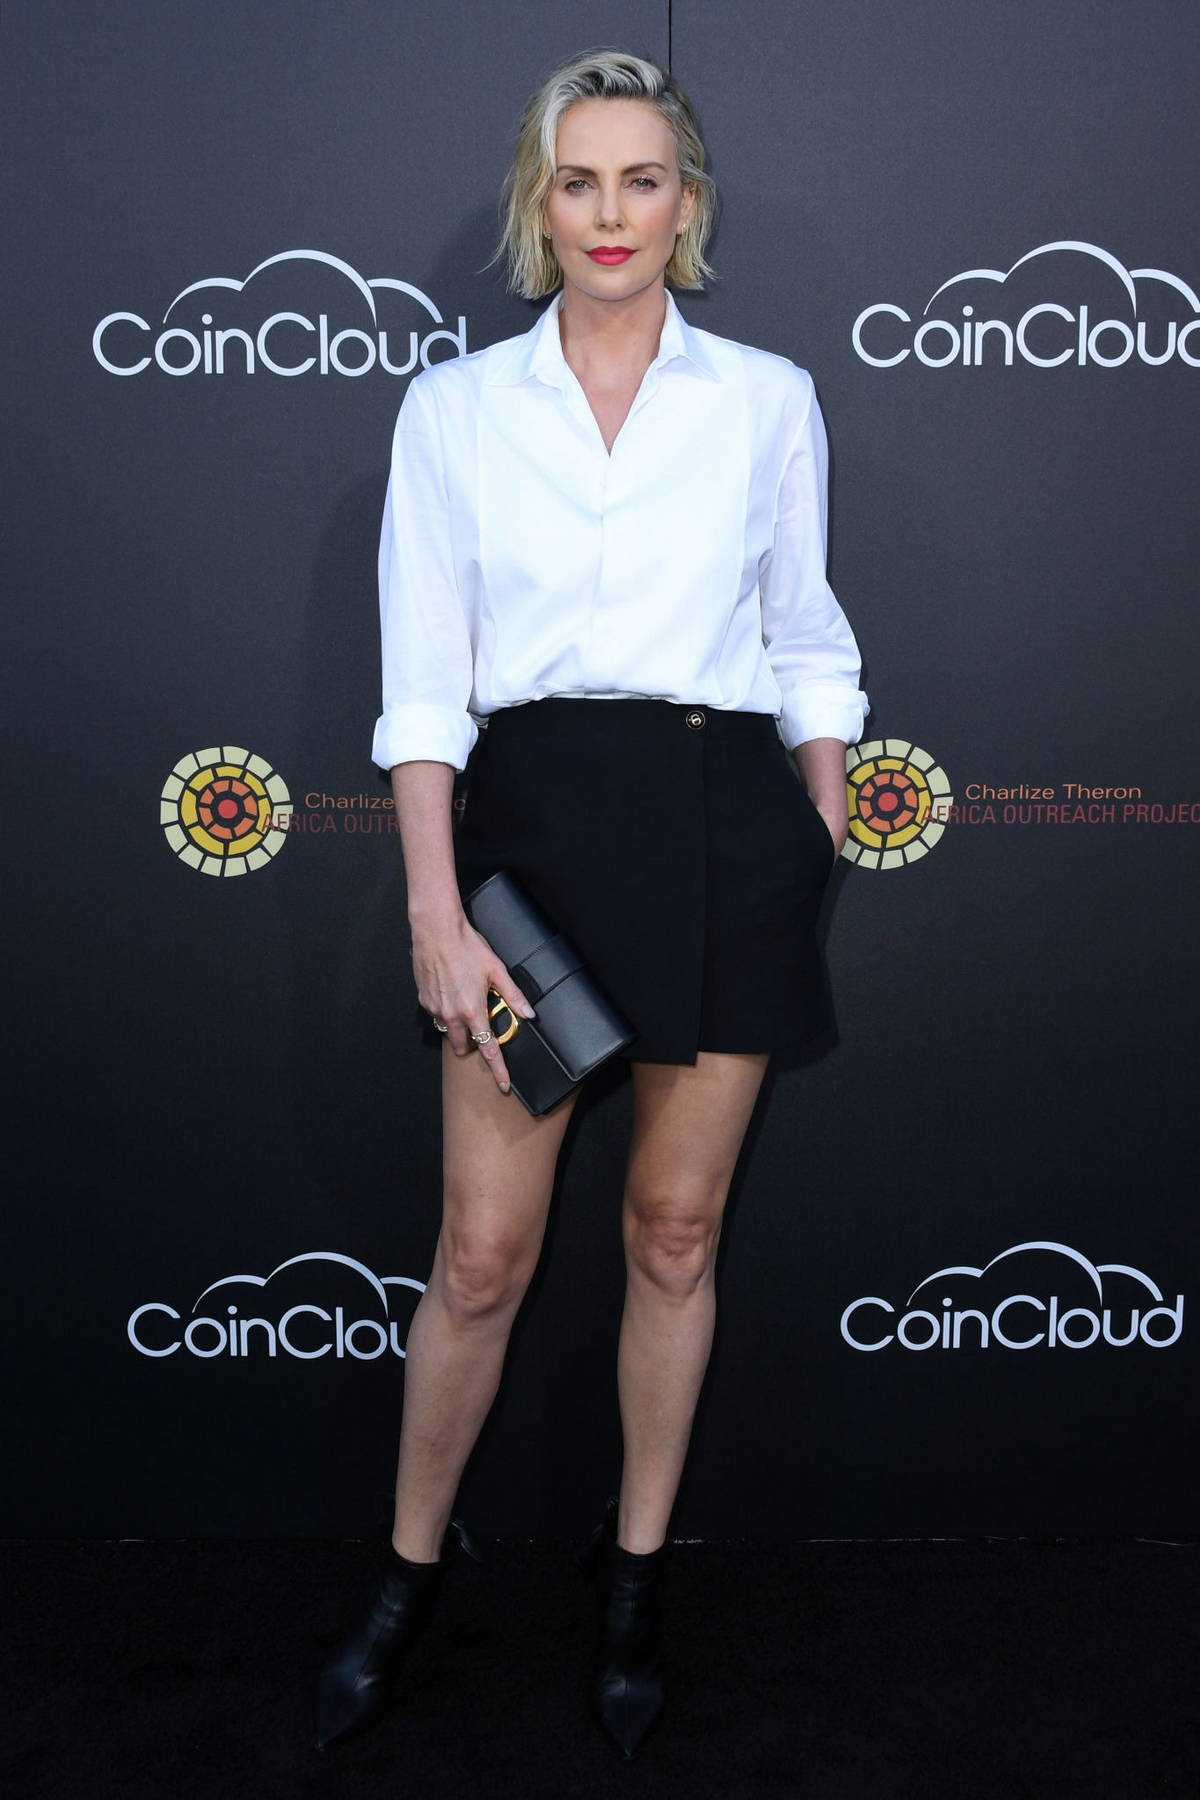 Charlize Theron attends the CTAOP's Night Out 2021: Fast And Furious in Universal City, California